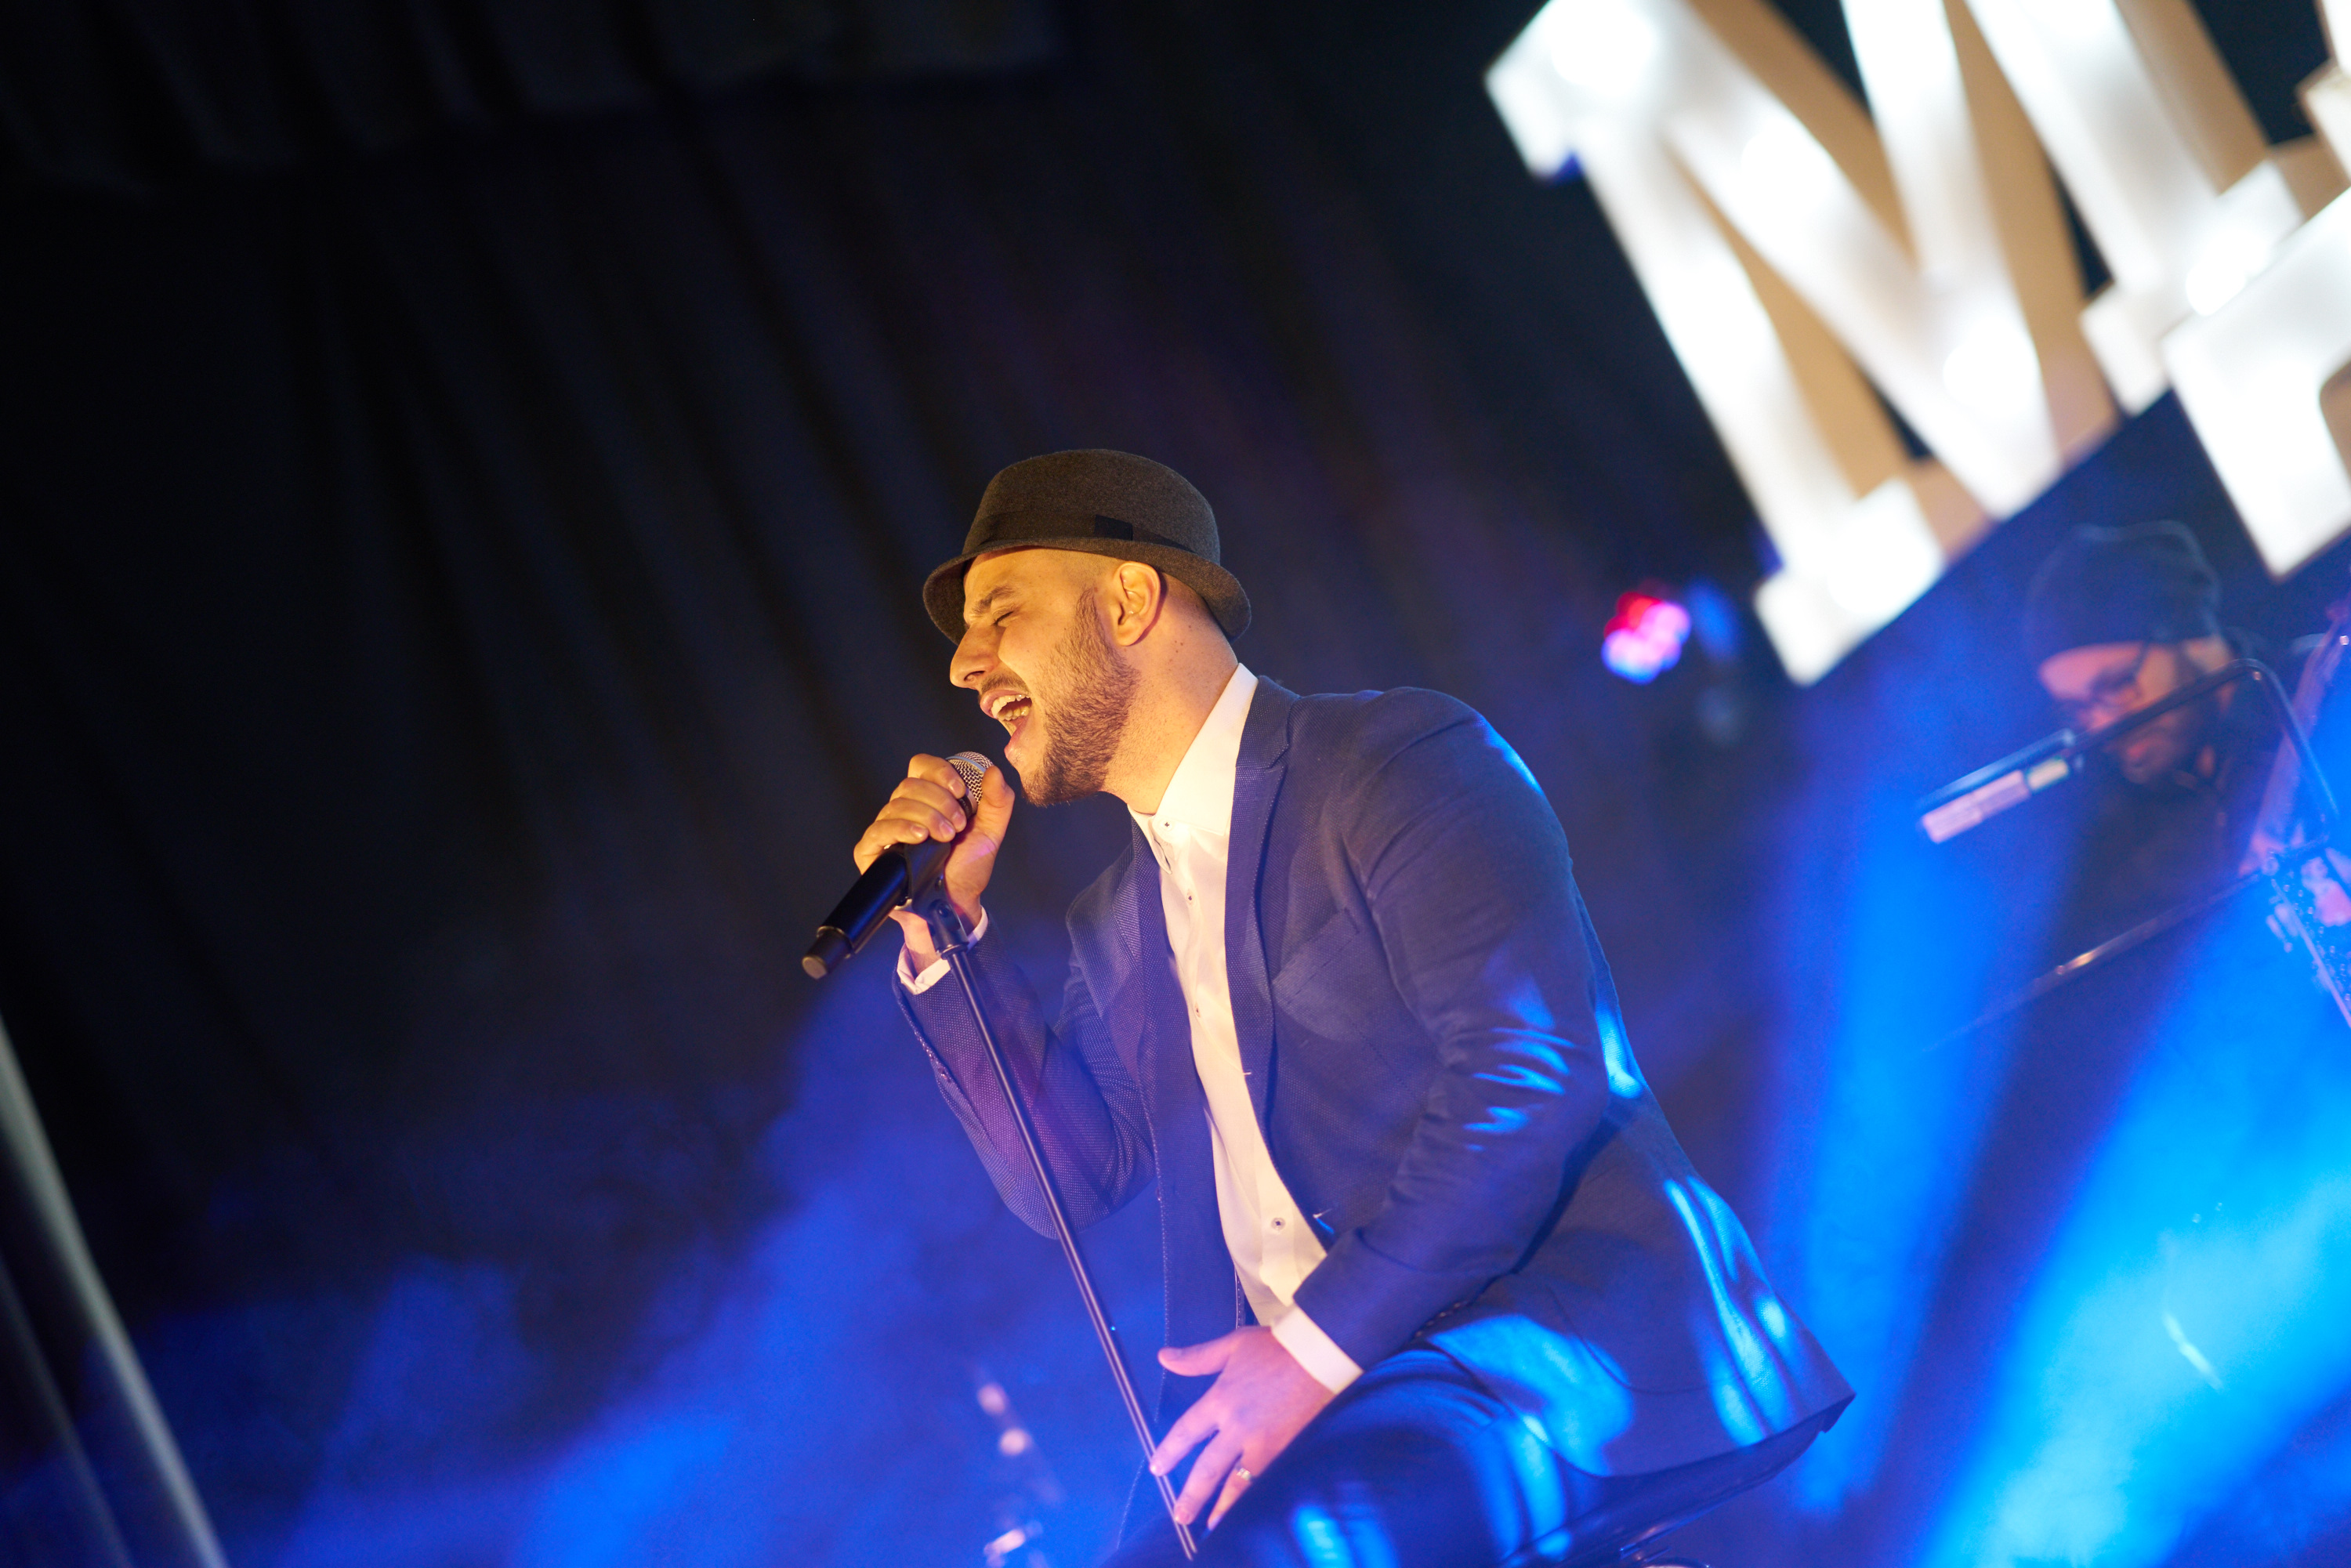 IN CONVERSATION WITH MAHER ZAIN FULL INTERVIEW! - Desixpress, DX